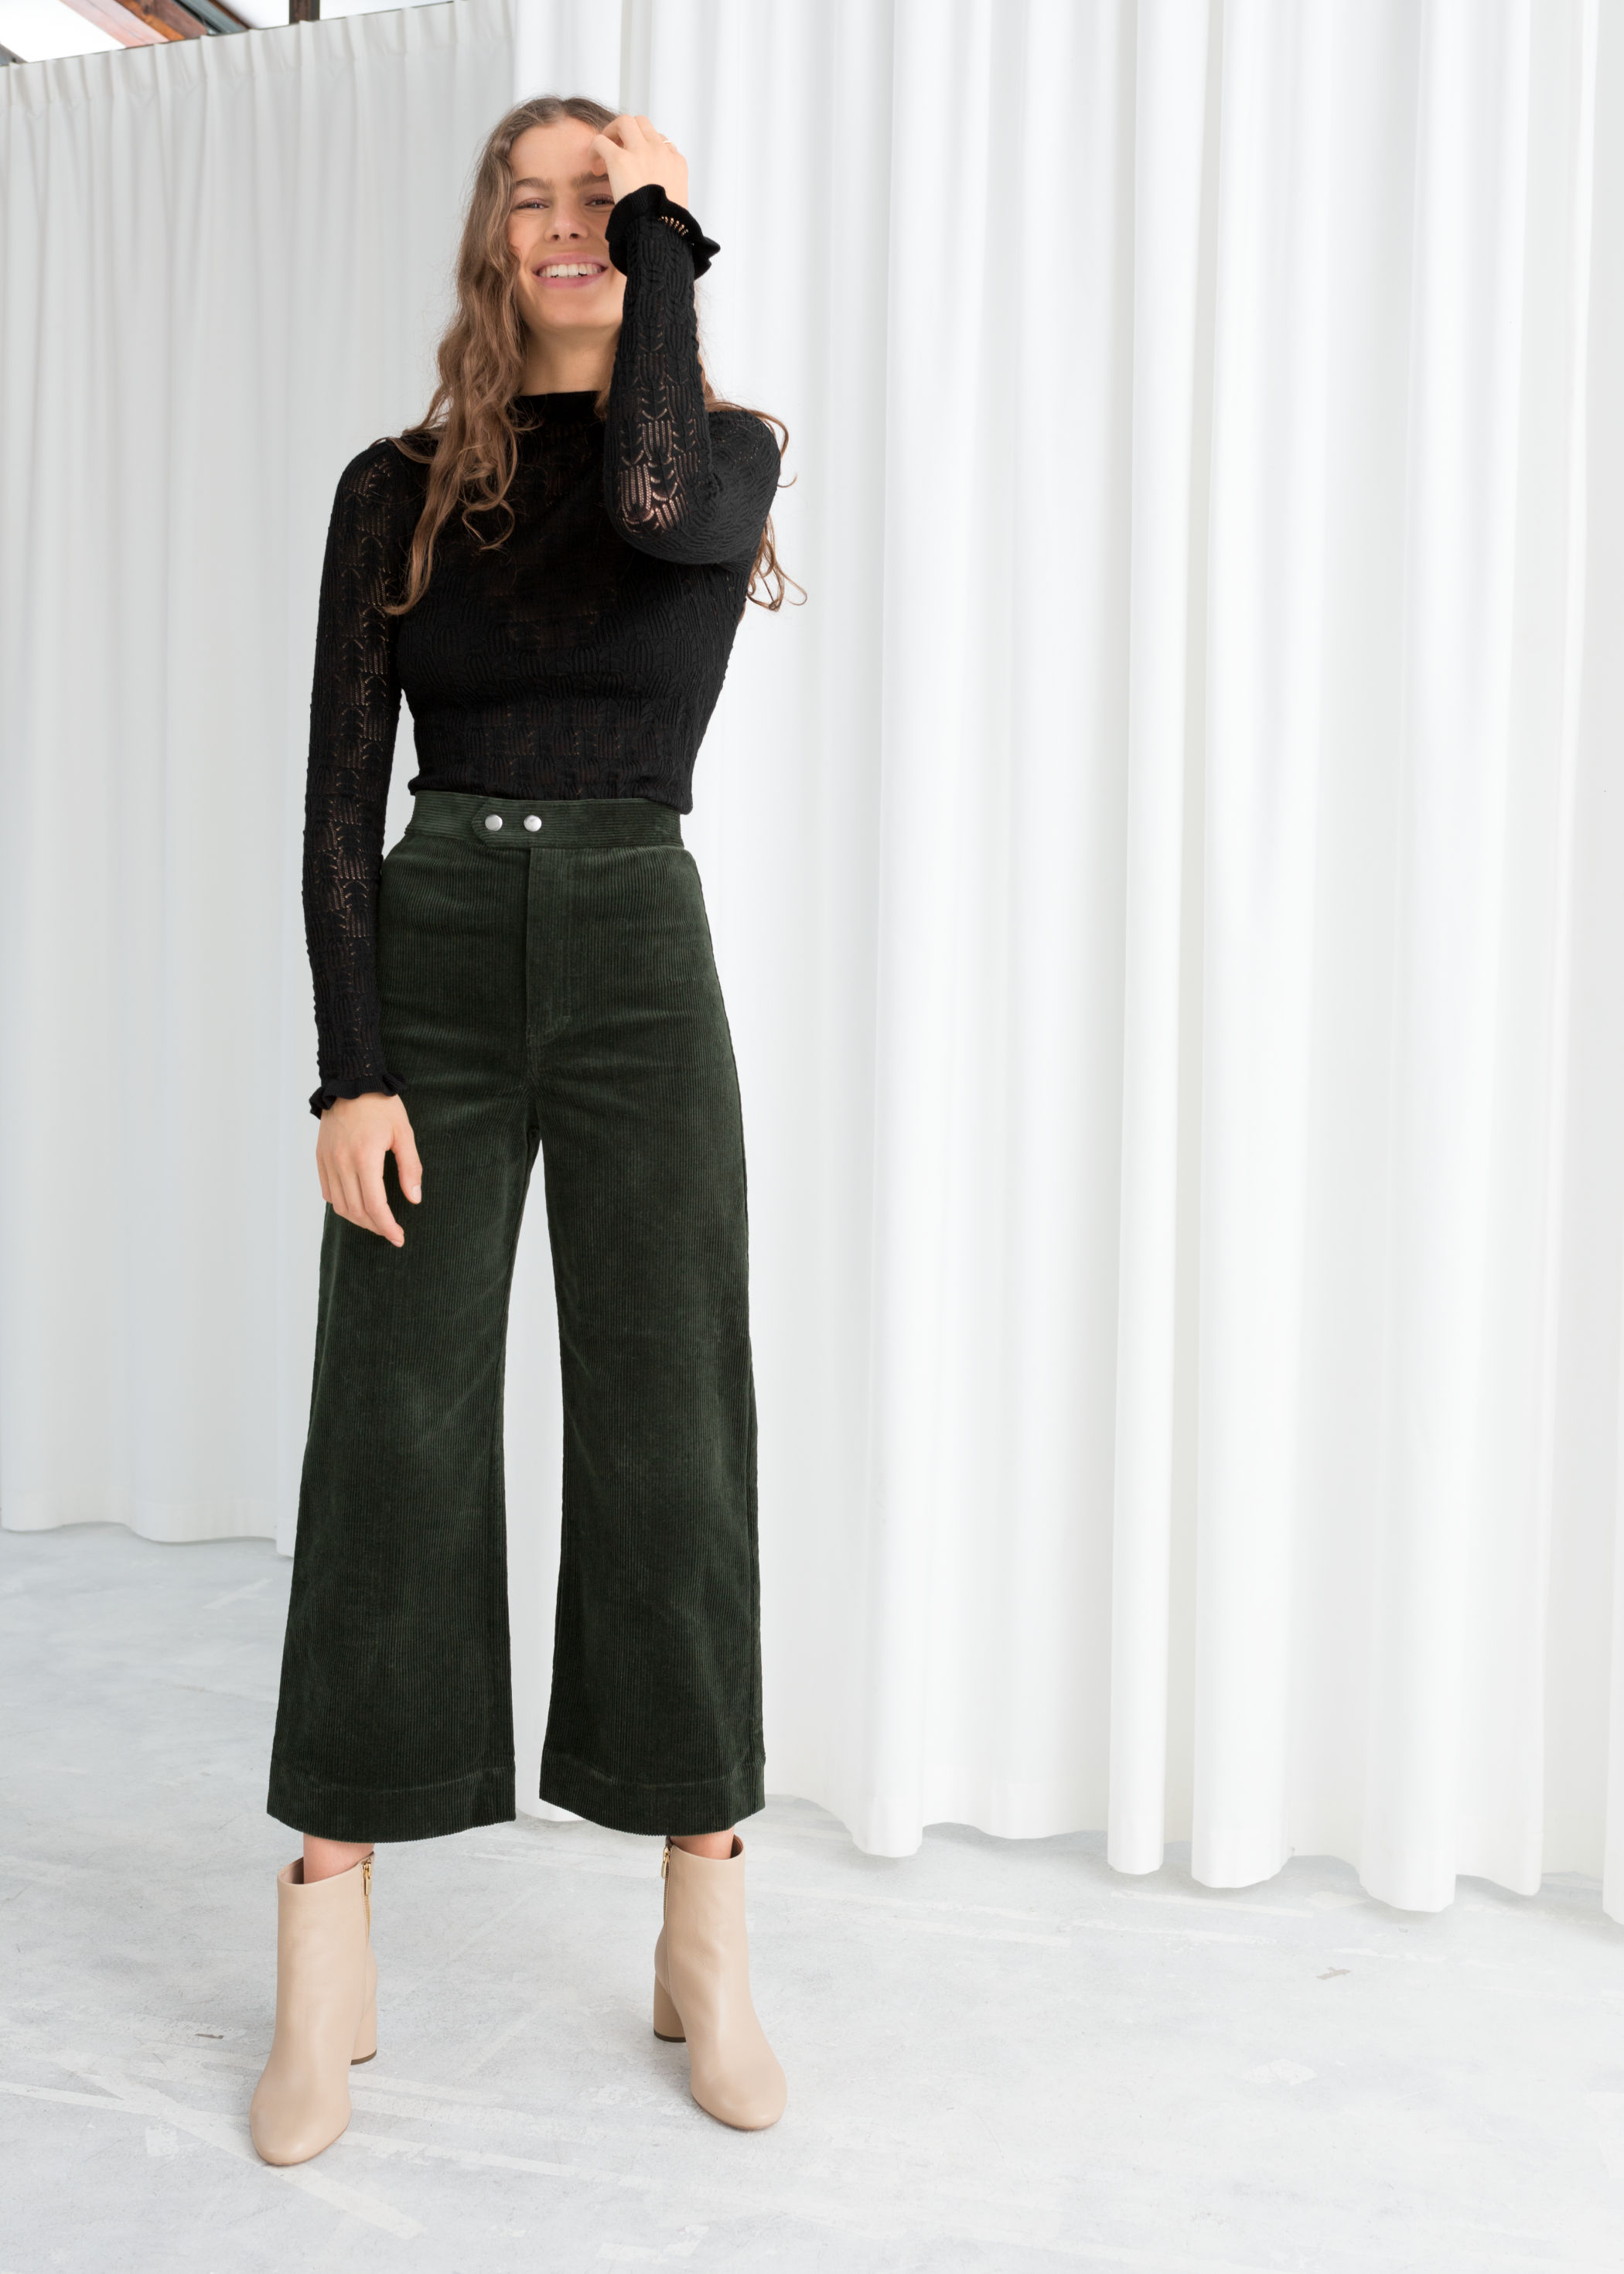 & OTHER STORIES // CORDUROY CULOTTES //<BR>£59.00